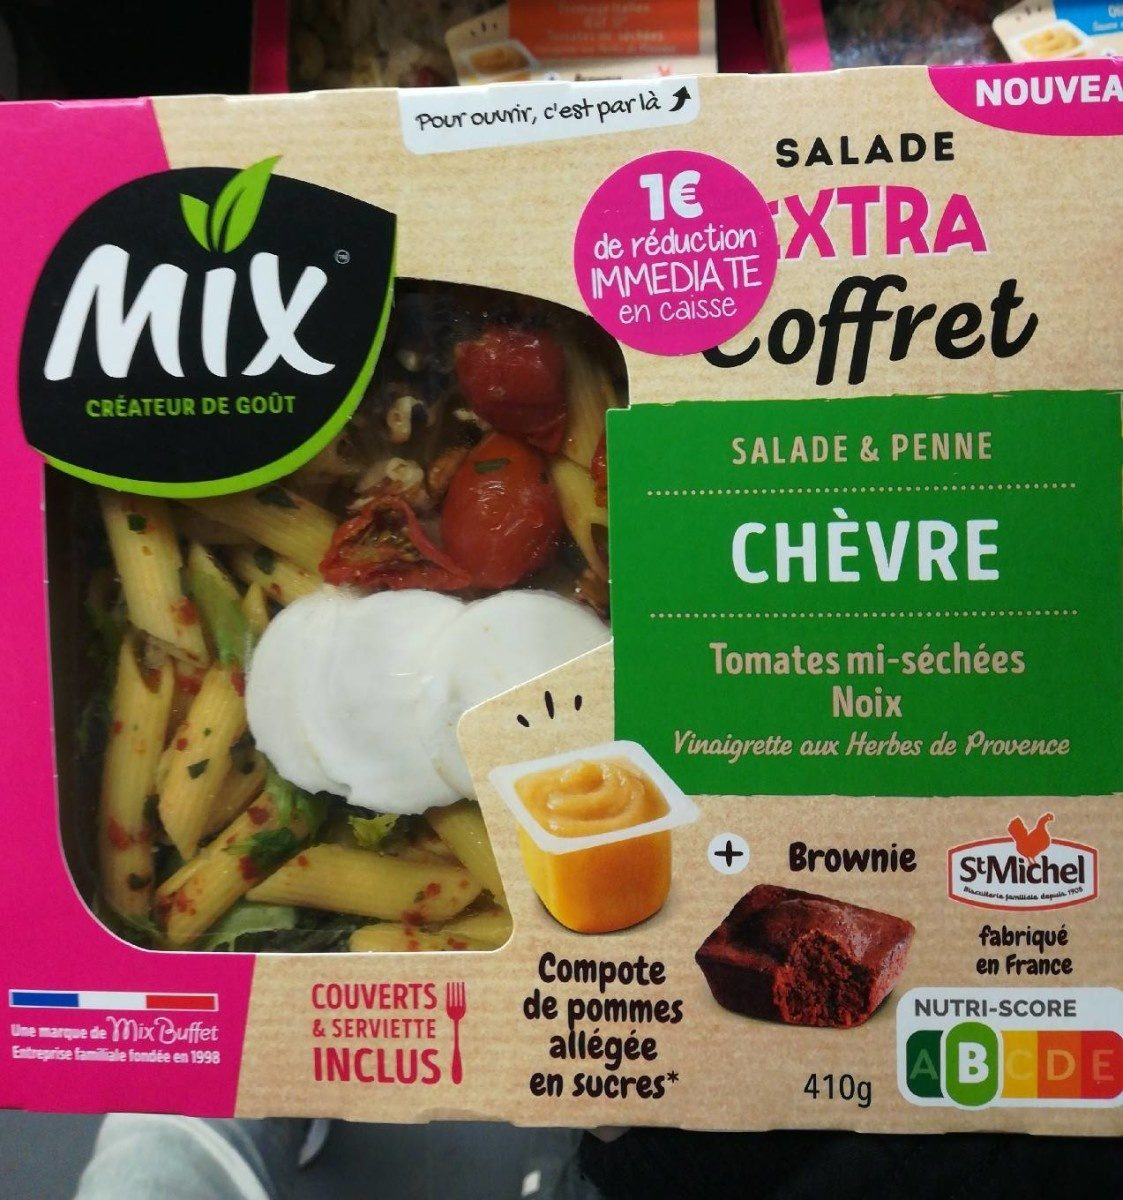 Salade extra coffret chèvre penne - Product - fr